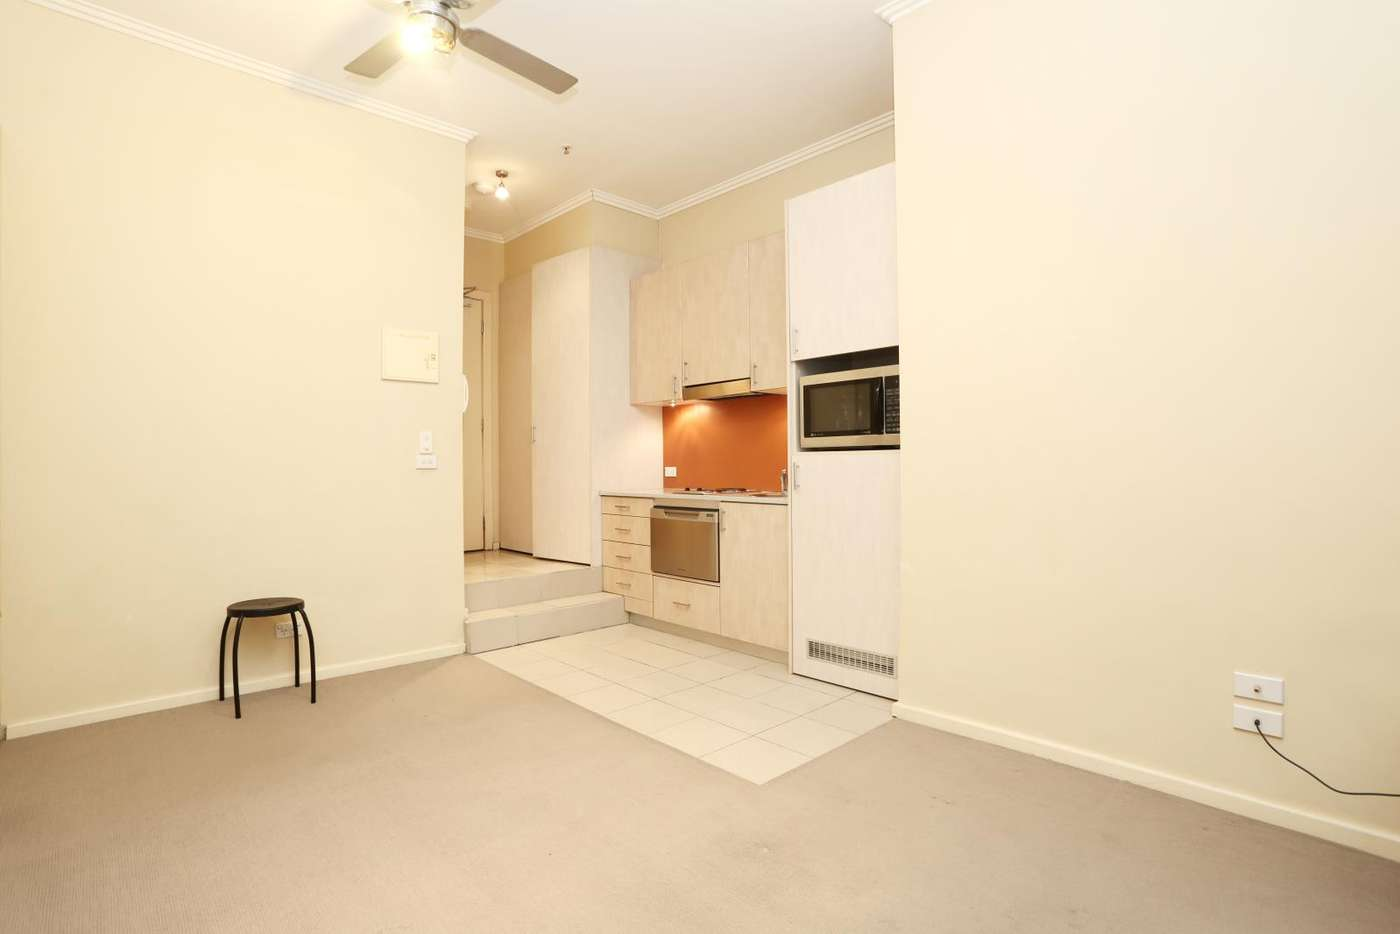 Sixth view of Homely studio listing, 65 Elizabeth St, Melbourne VIC 3000